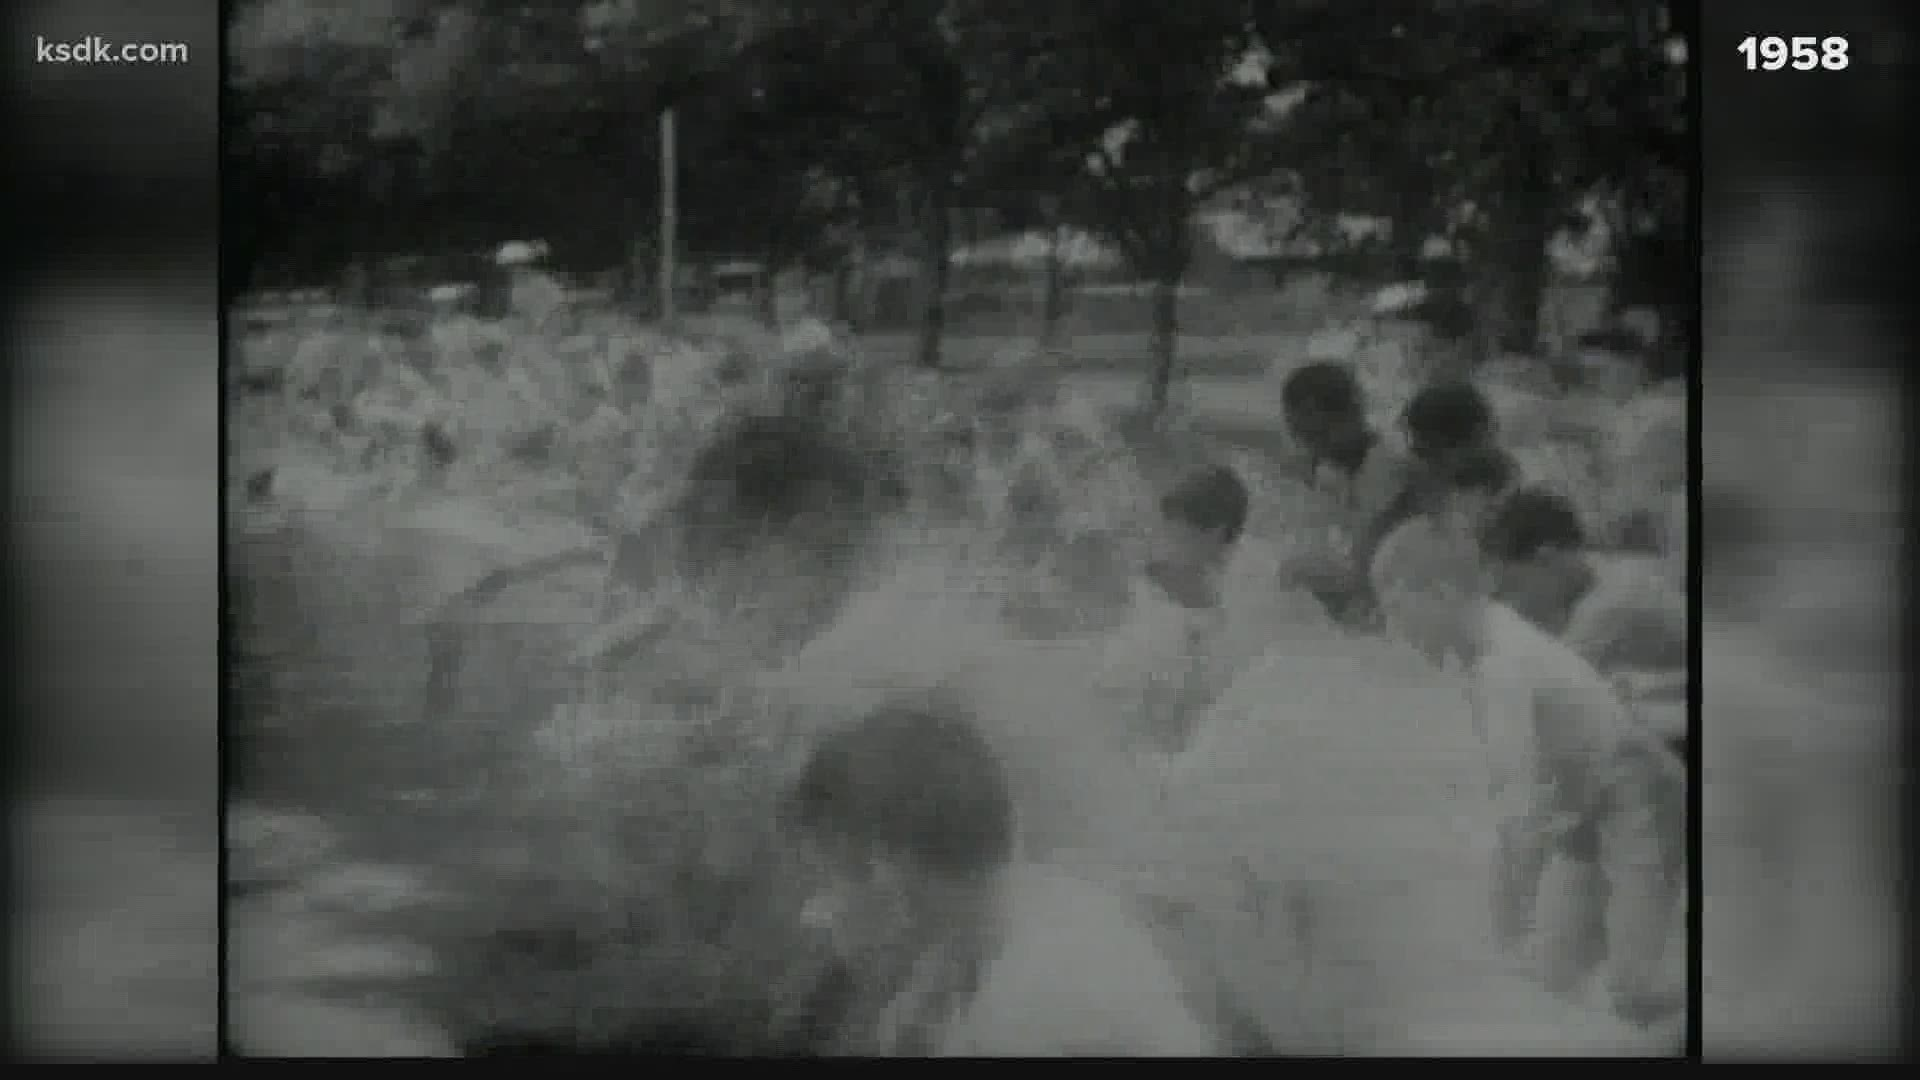 Hot controversy over St. Louis' public pools in 1958 | wgrz.com